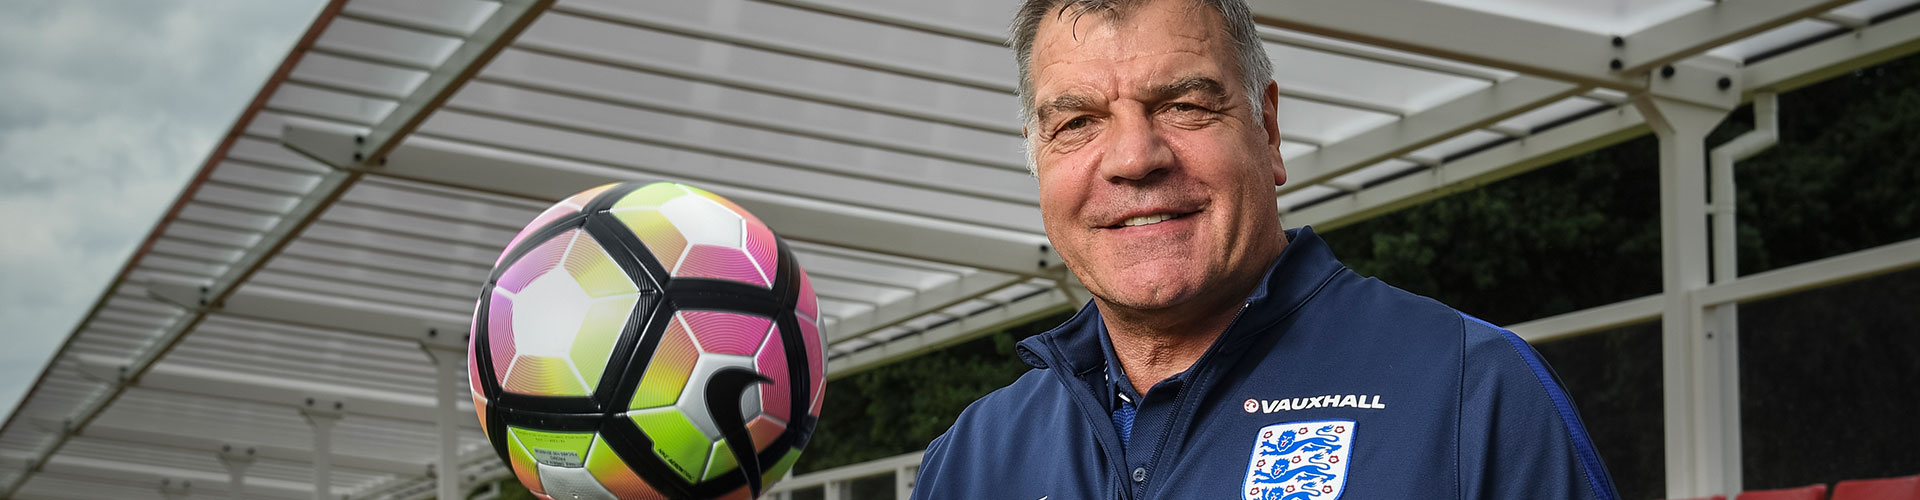 Is Sam Allardyce the right man for the England job?